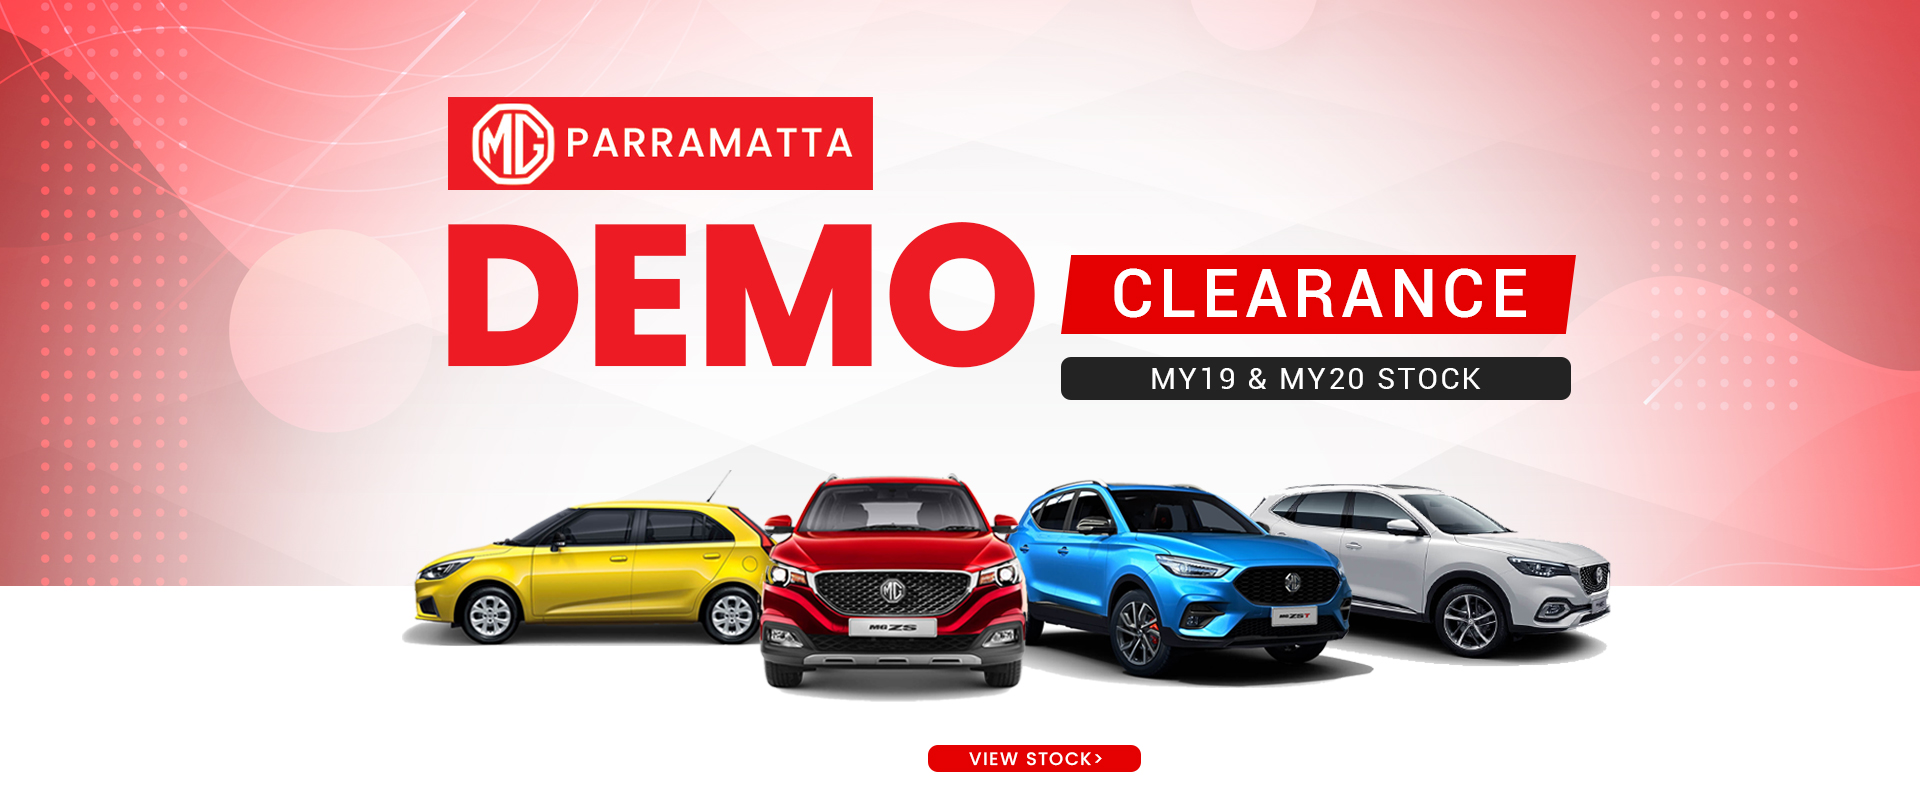 MG Demo Clearance Sale